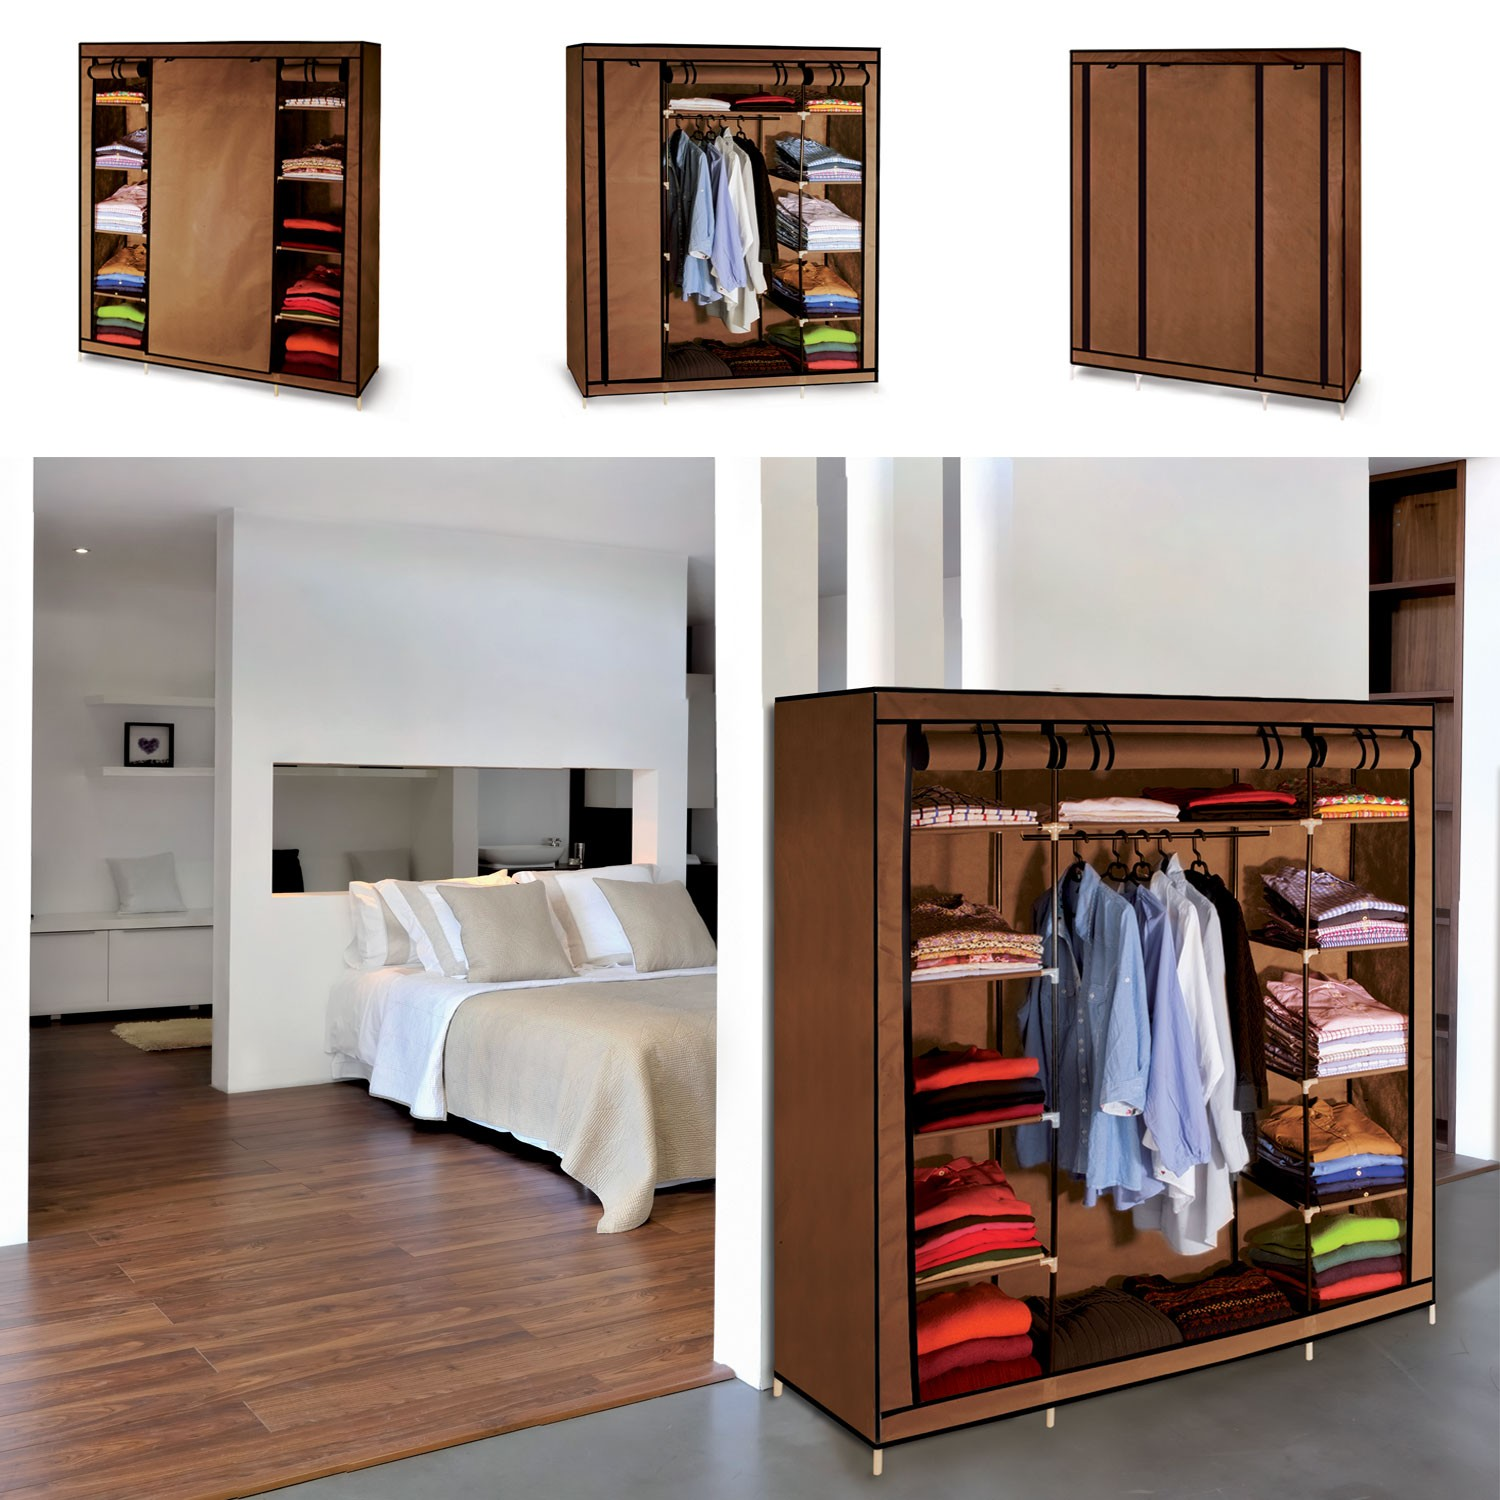 armoire de rangement chocolat dressing penderie xxl tissu. Black Bedroom Furniture Sets. Home Design Ideas